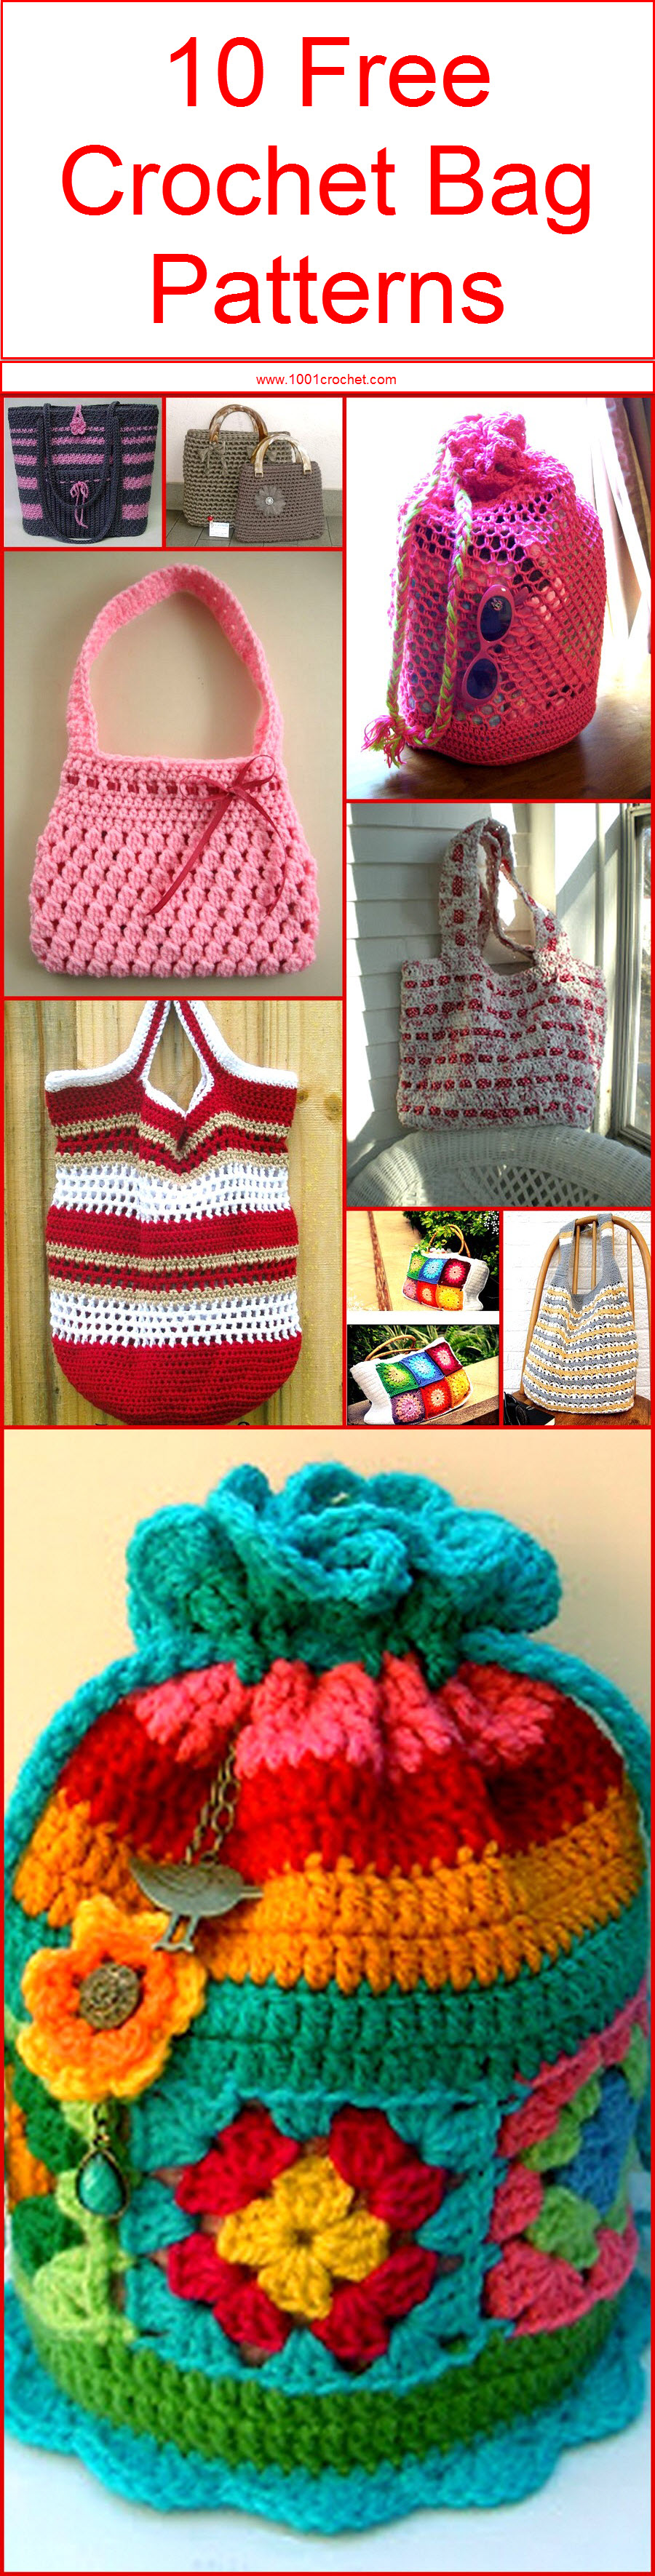 10-free-crochet-bag-patterns